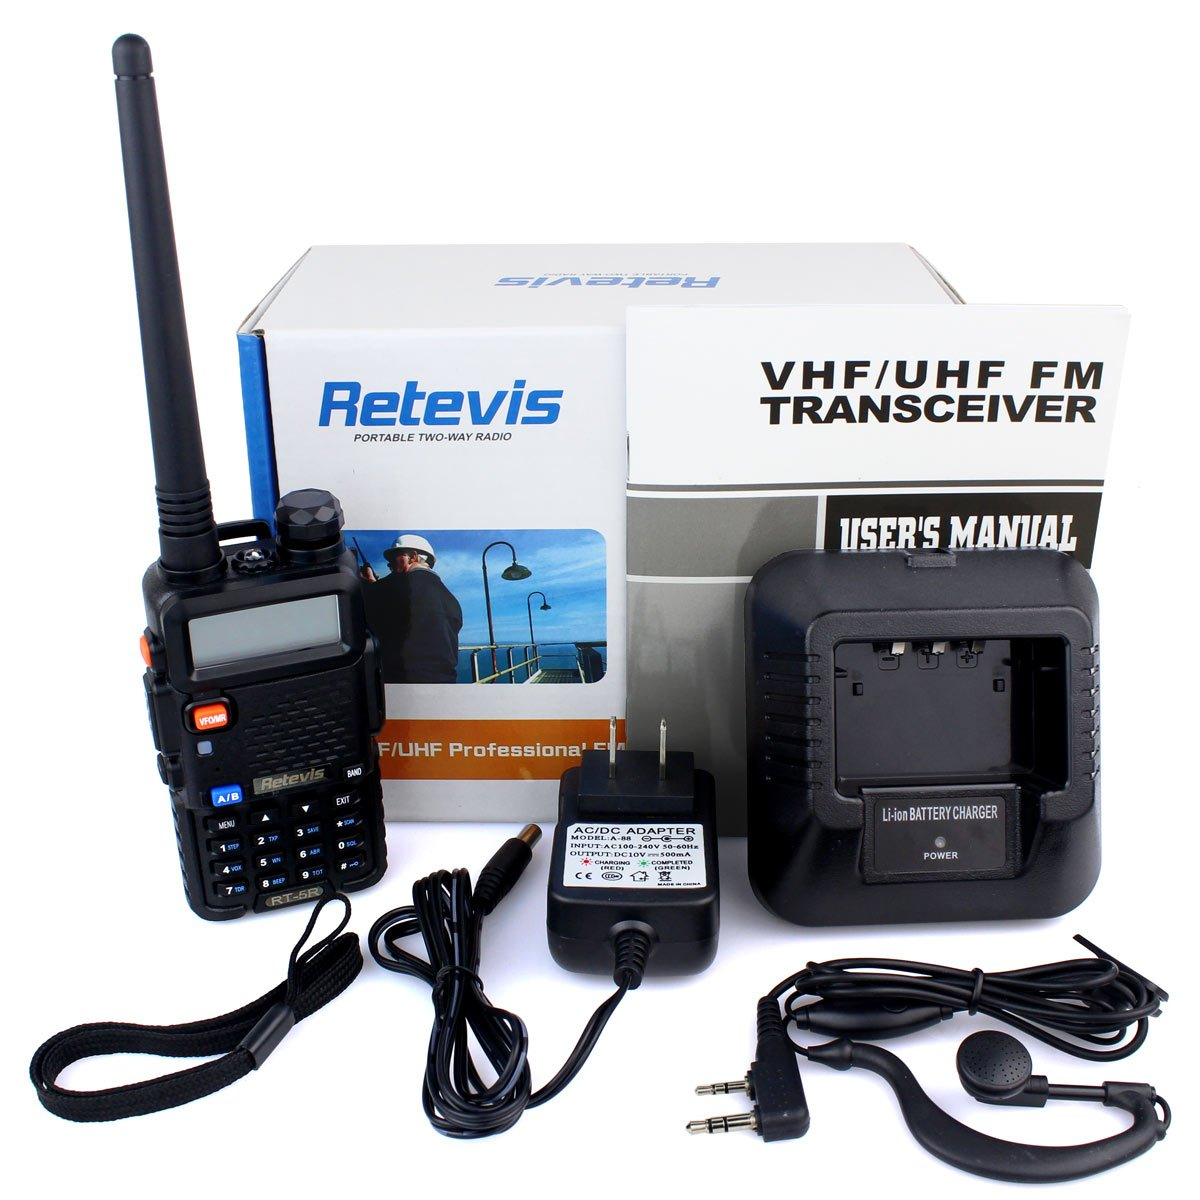 Retevis RT-5R 2 Way Radio 5W 128CH UHF/VHF 400-520MHz/136-174MHZ Walkie Talkies (6 Pack) and Programming Cable by Retevis (Image #9)